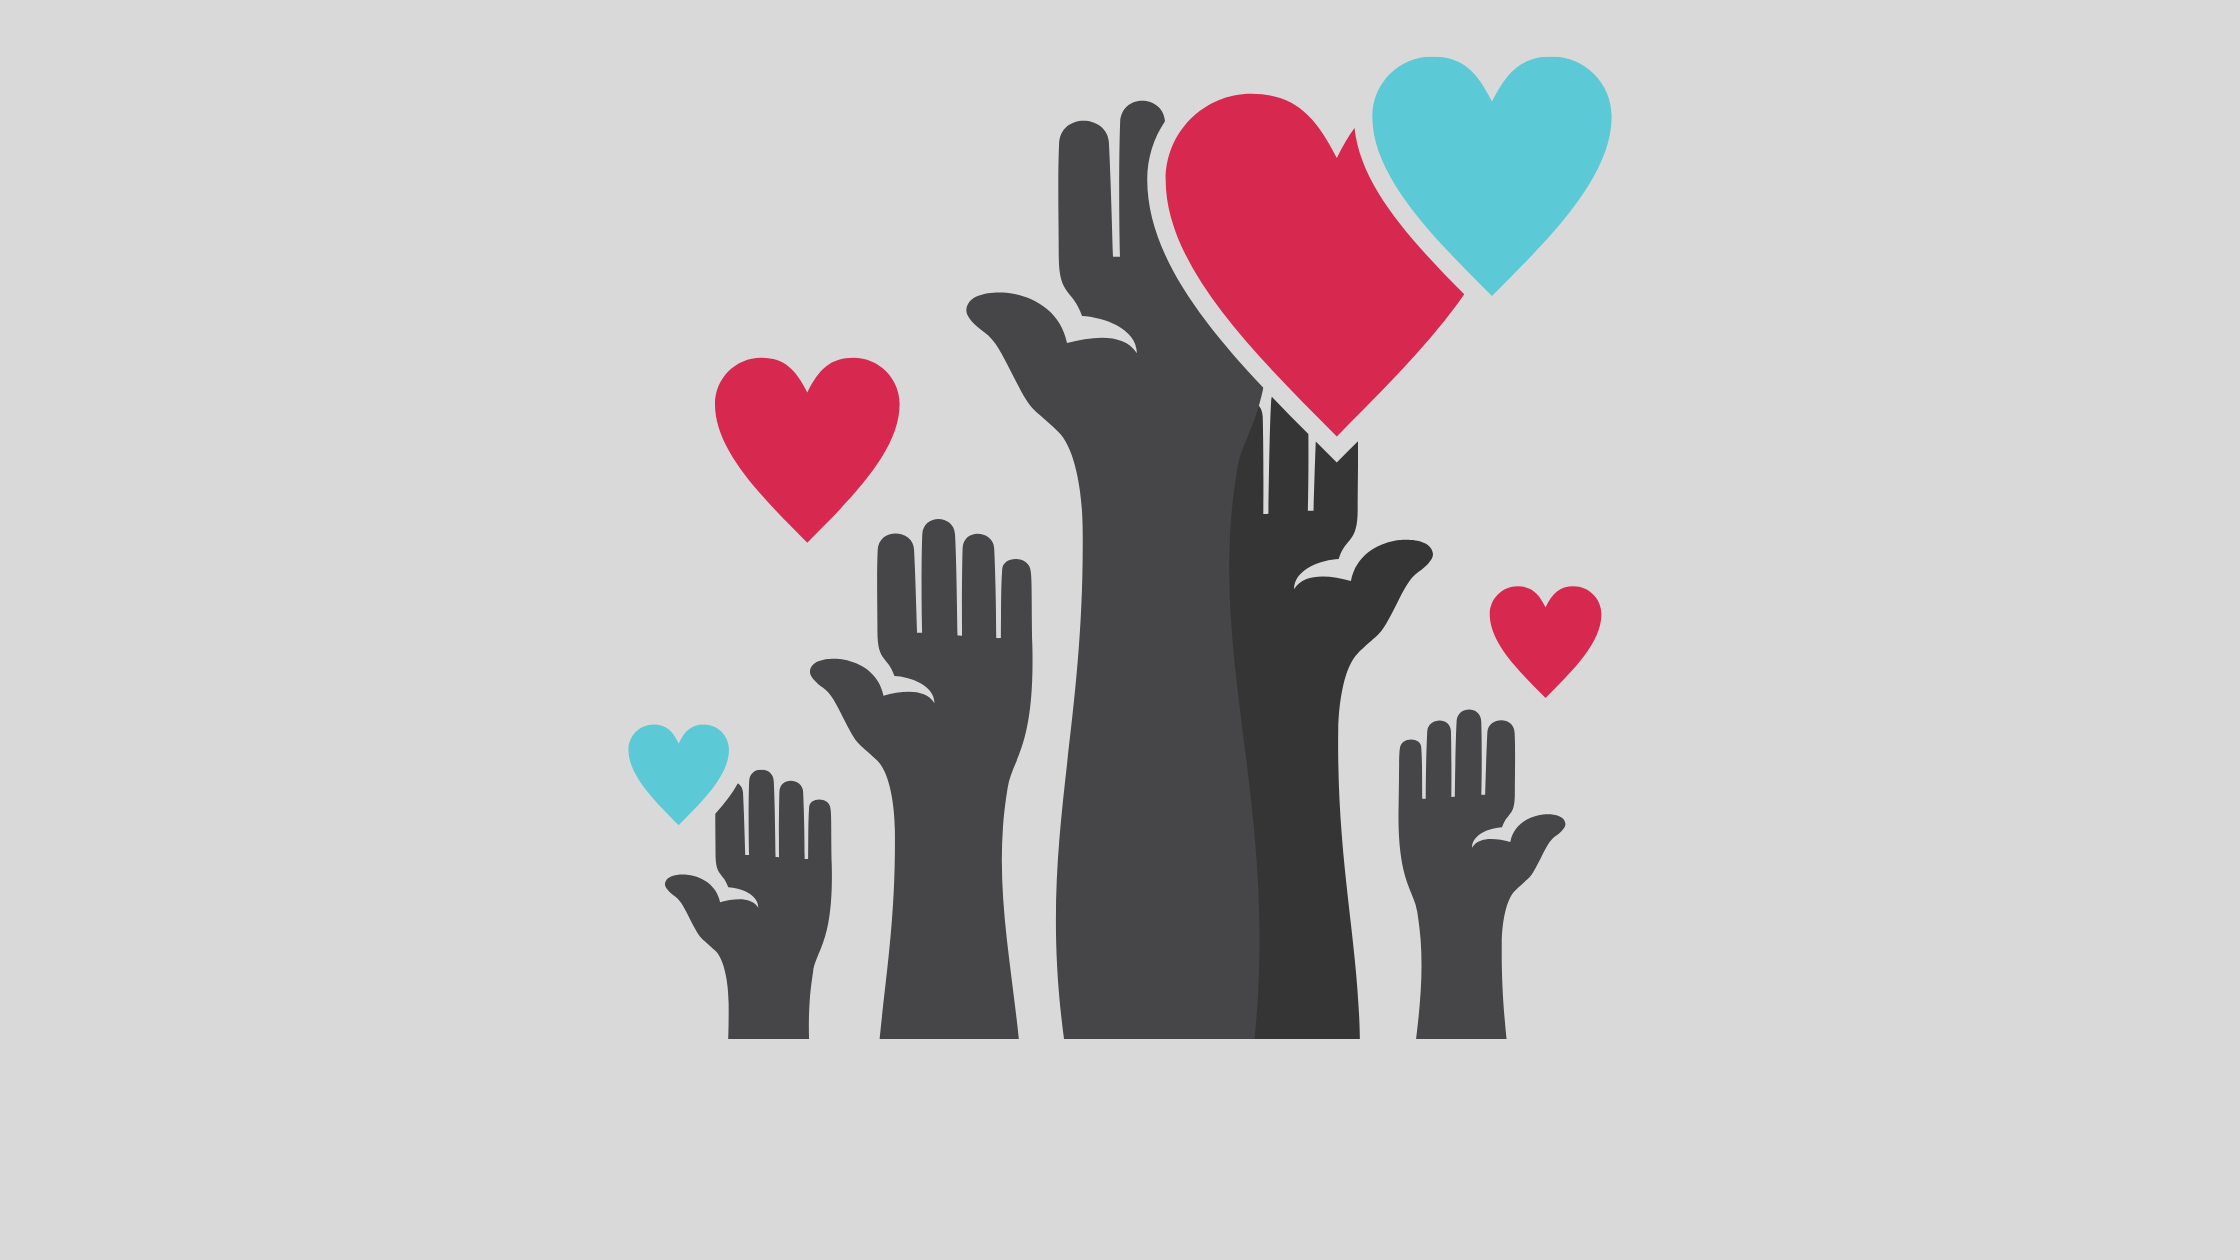 several hands reaching up with hearts